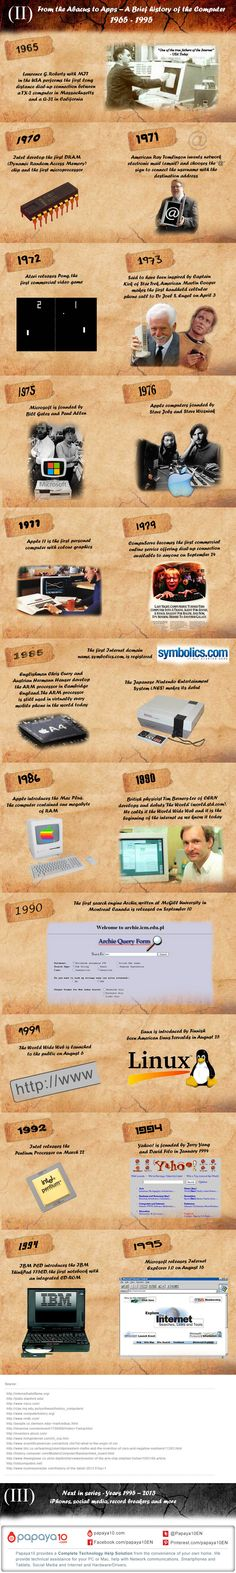 From the Abacus to Apps - A Brief History of the Computer #Computer #History #Tablet #Smartphone #Laptop #Microchip